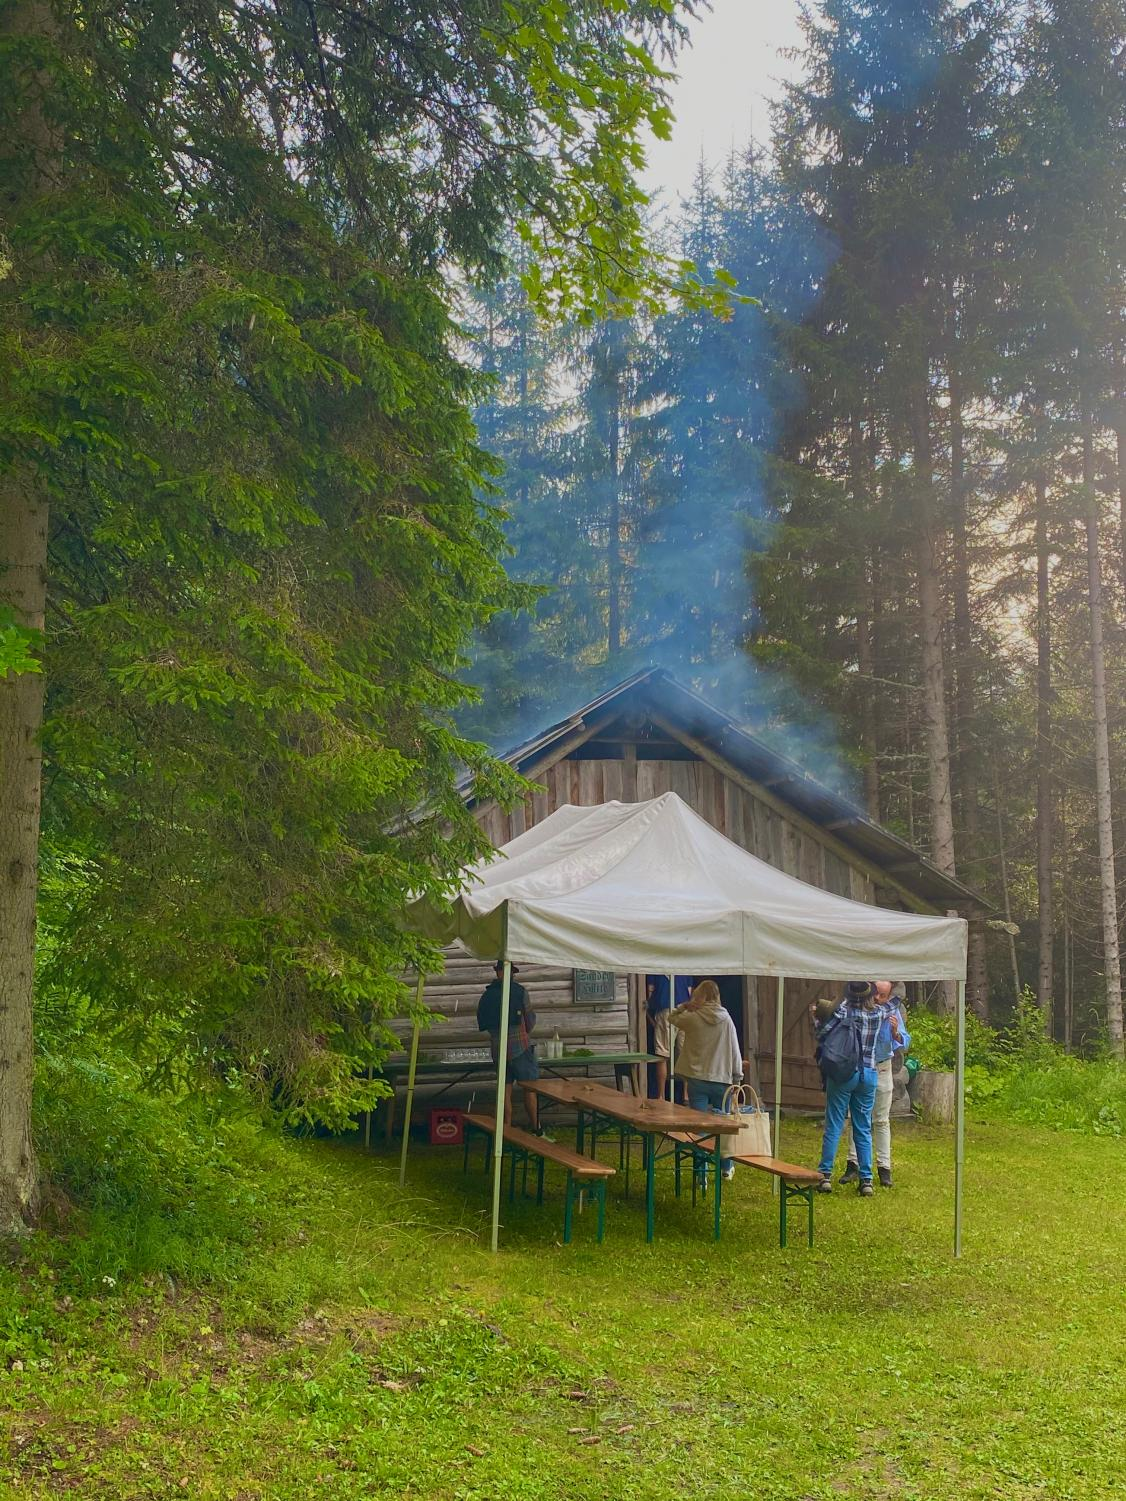 Photo+Essay%3A+Through+the+eyes+of+Letizia+Oetker+in+Germany